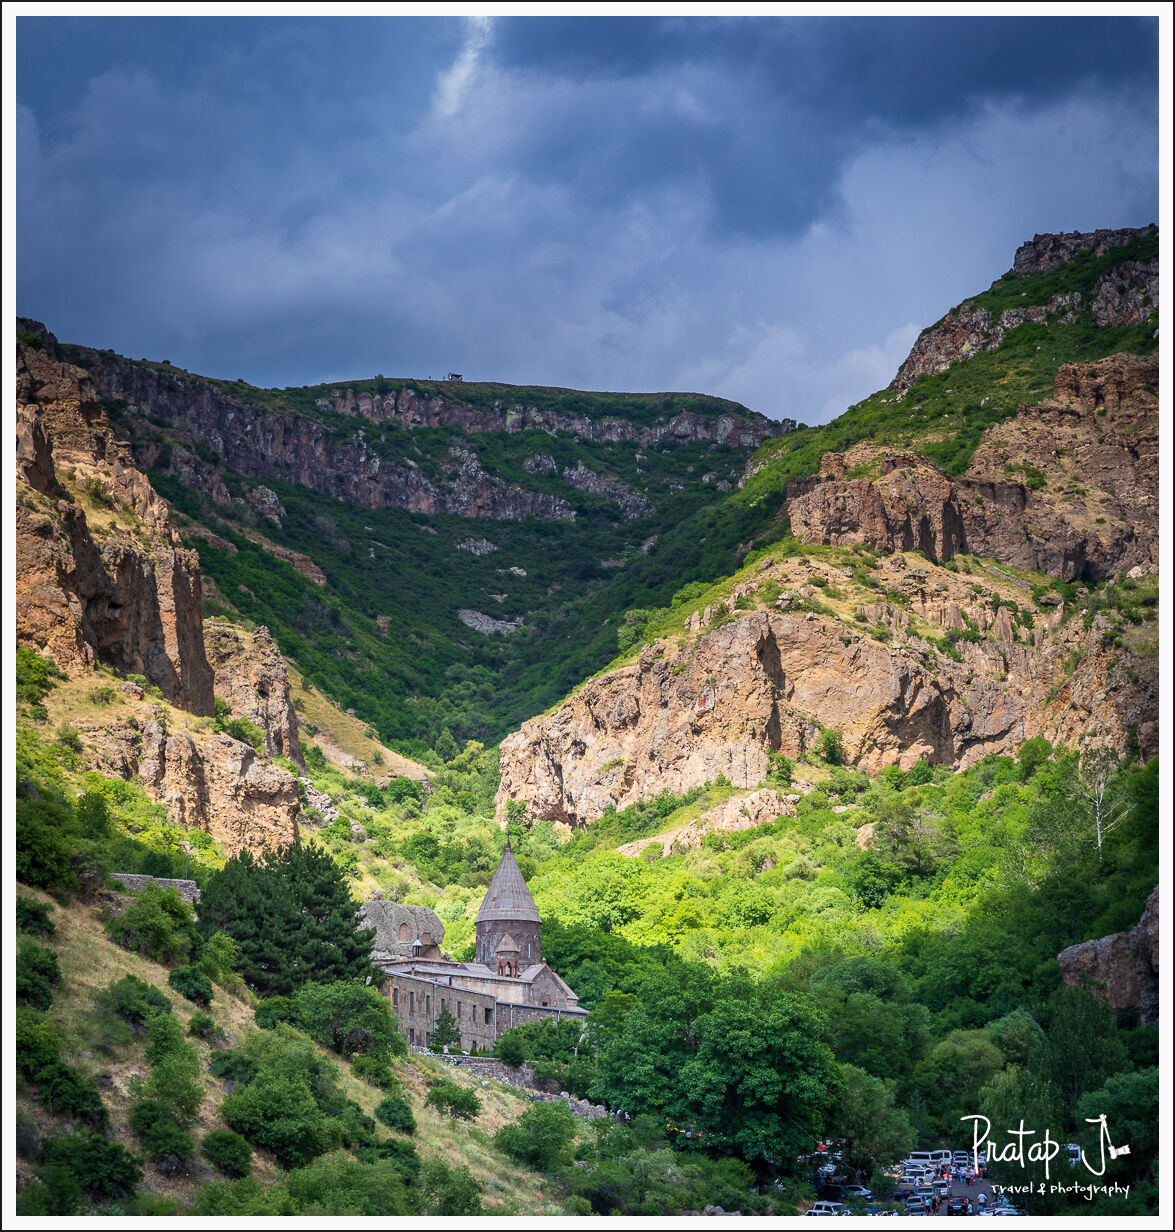 A view of geghard monastery in between mountains